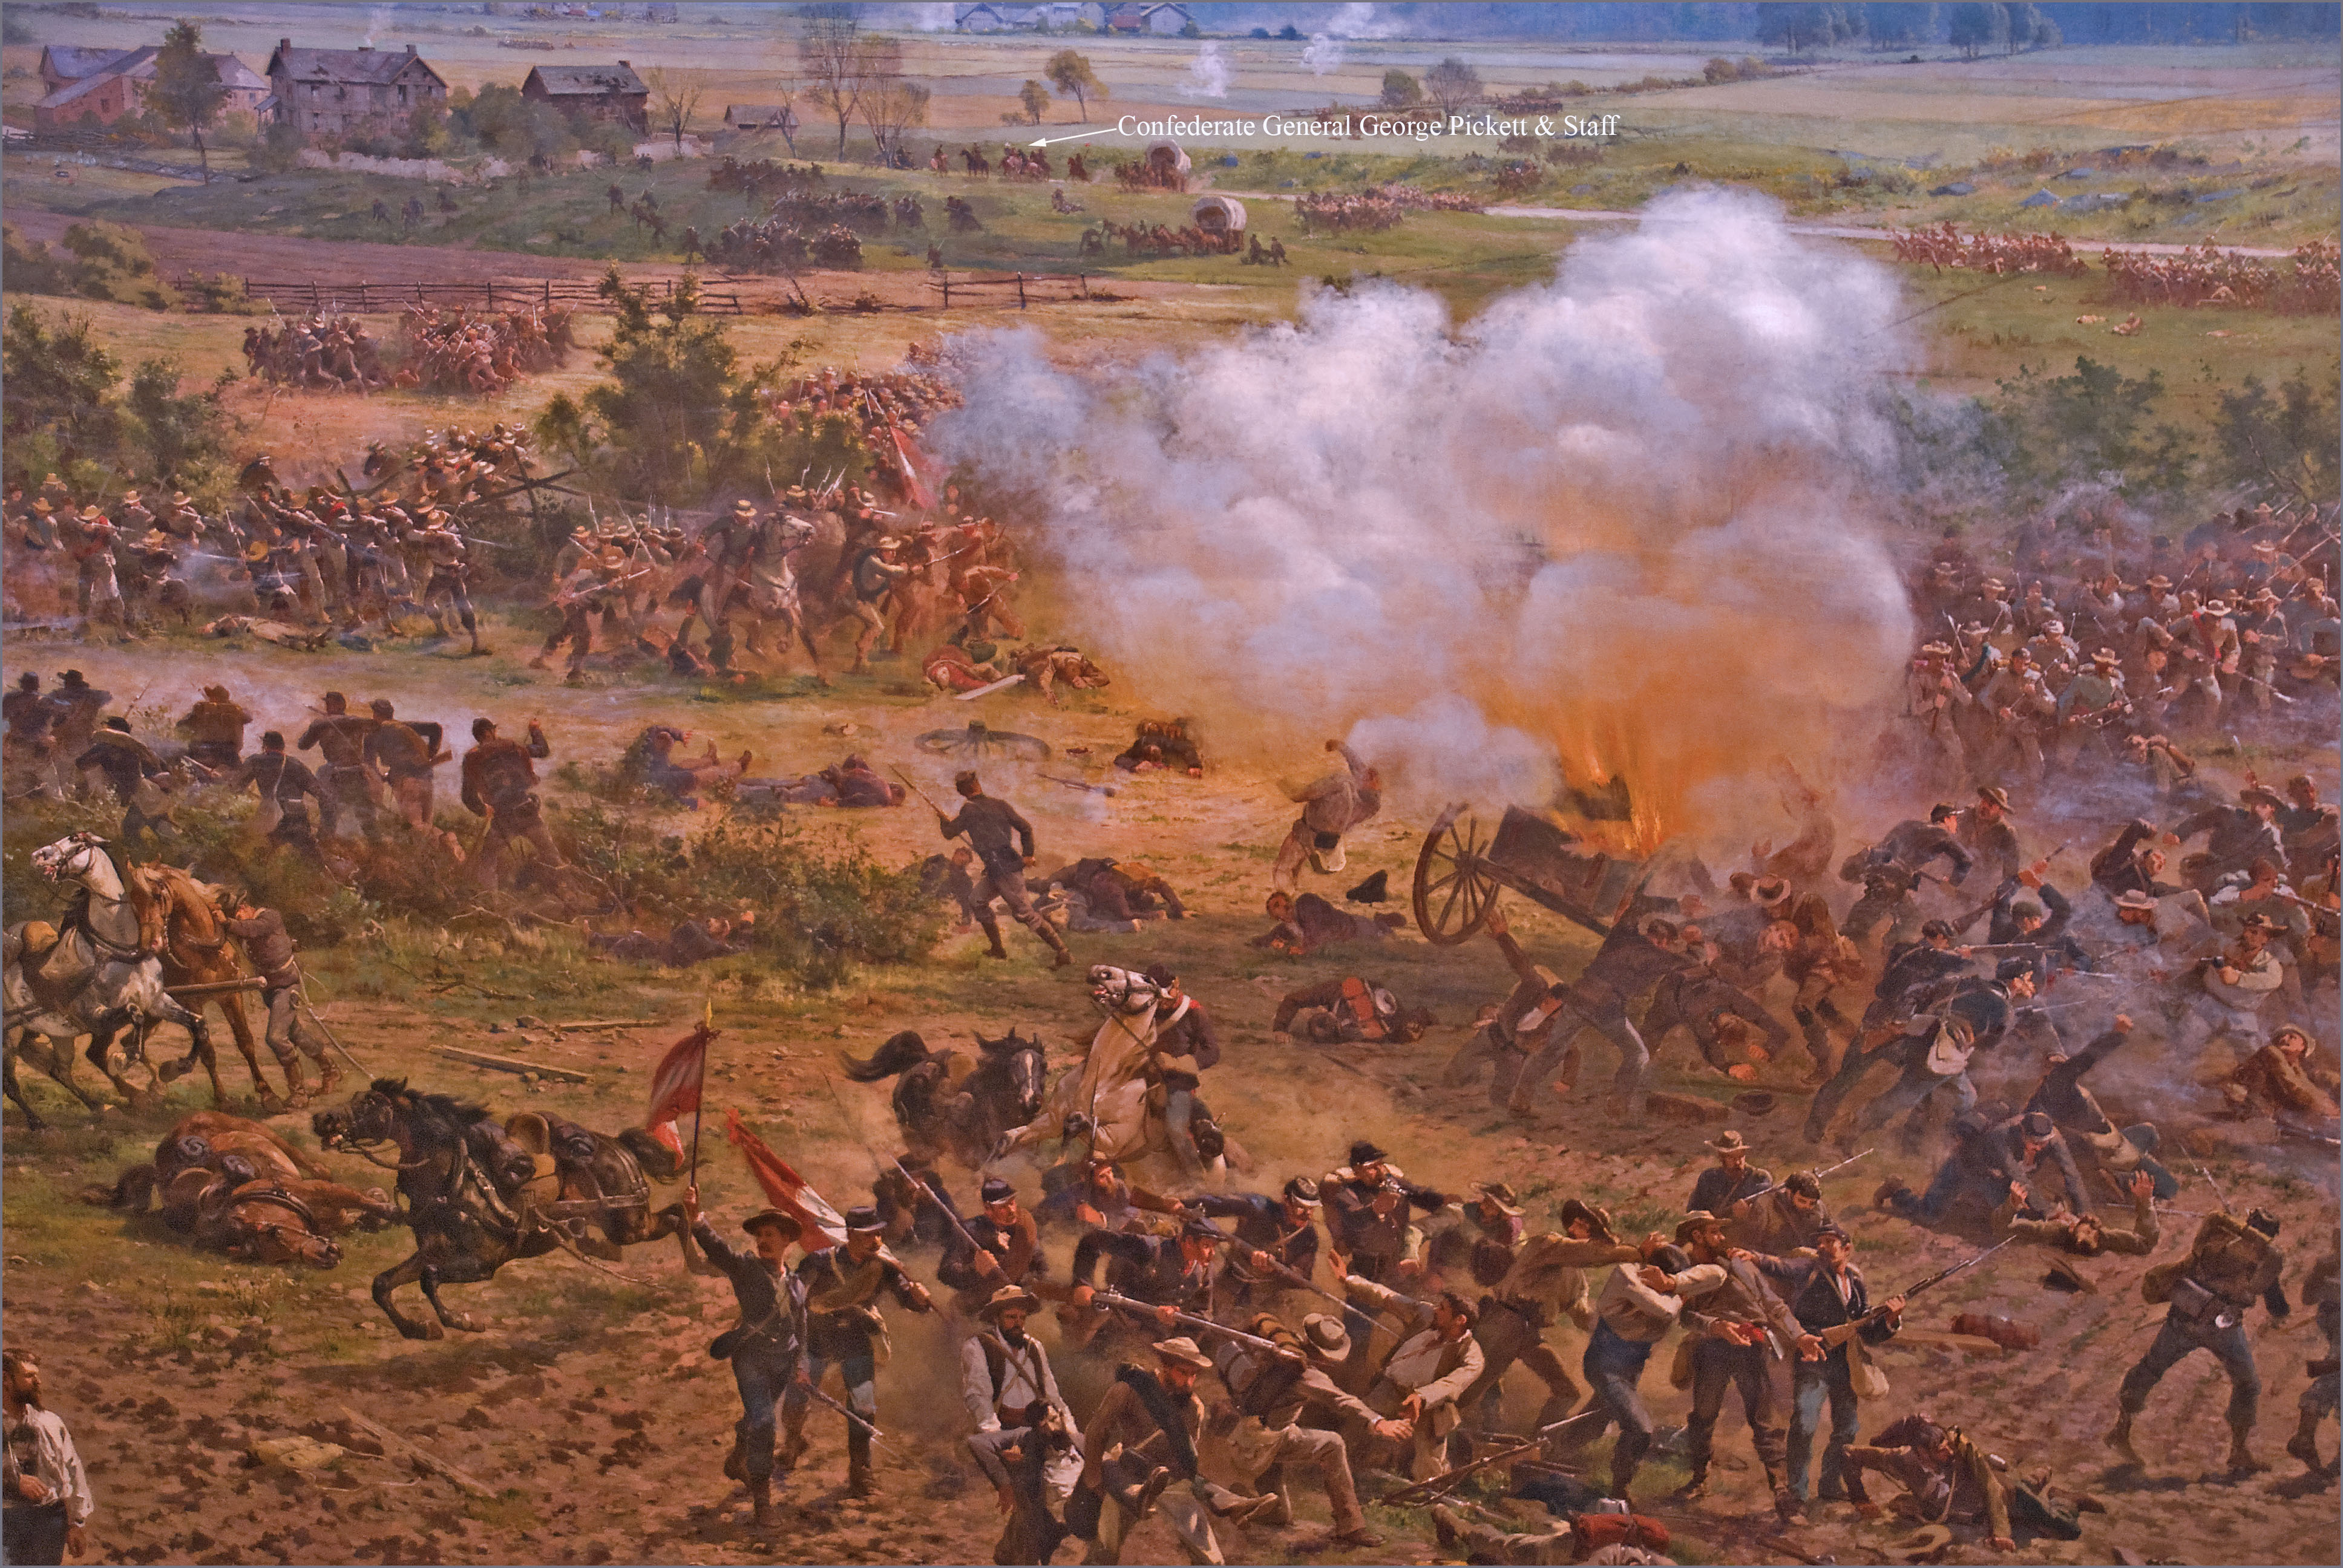 a history of gettysburg Hourly history tells the tale of the civil war and the battle of gettysburg very well the war started on april 12, 1861 when a single shot was fired it lasted until may 9, 1865 with more than a half million american deaths, 25 percent of the country's population.